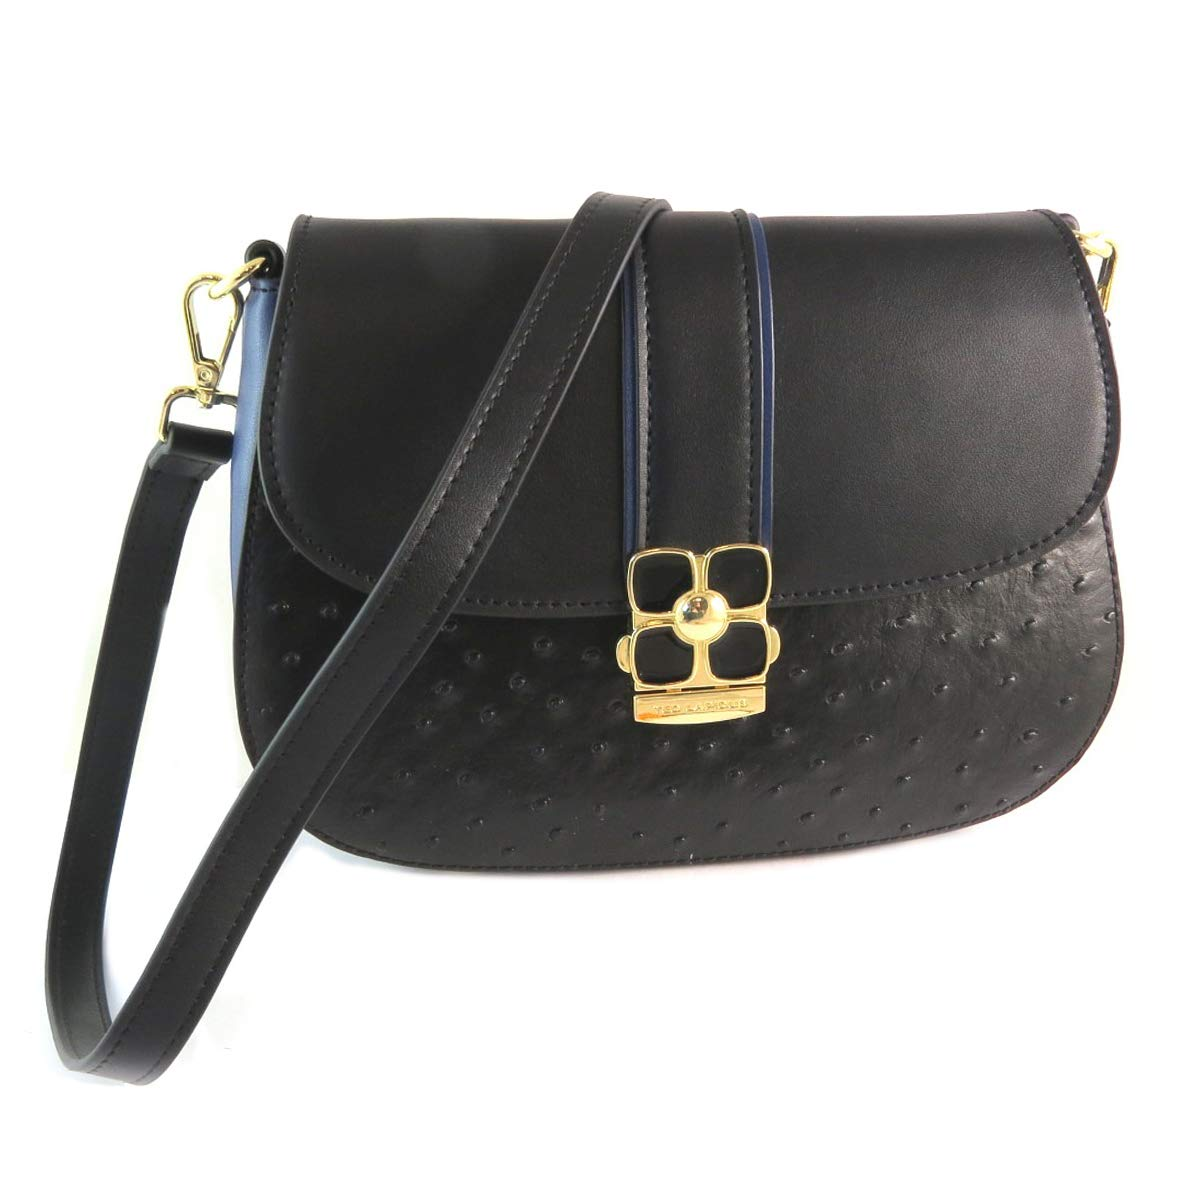 23036ee9ca0a Ted Lapidus [Q2195] - Leather Bag 'Ted lapidus' Black Blue - 26x20x8 ...